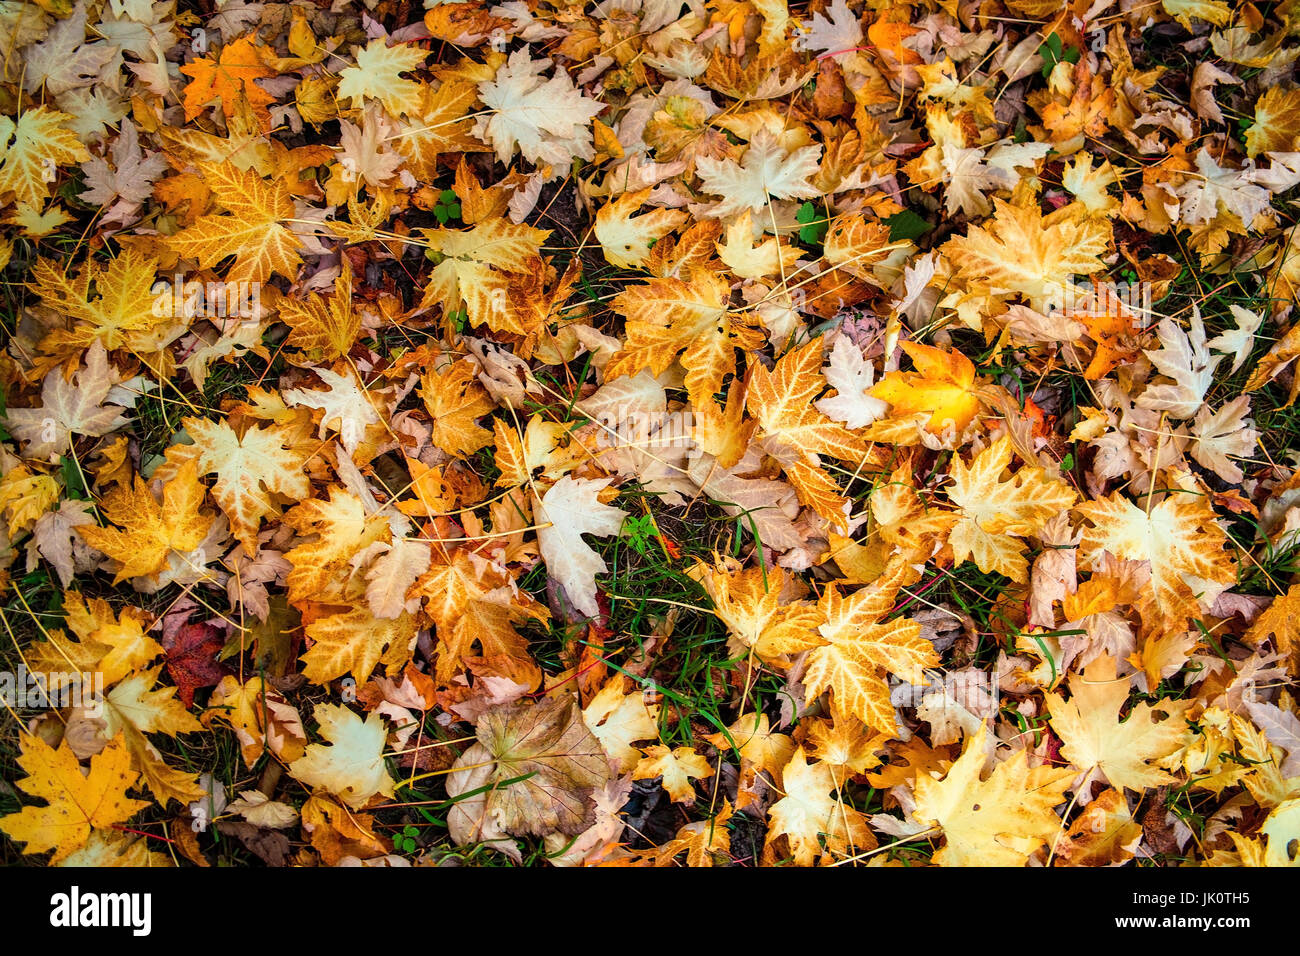 maple leaves on the ground after the autumnal fall of leaves, ahornblaetter am boden nach dem herbstlichen laubfall Stock Photo